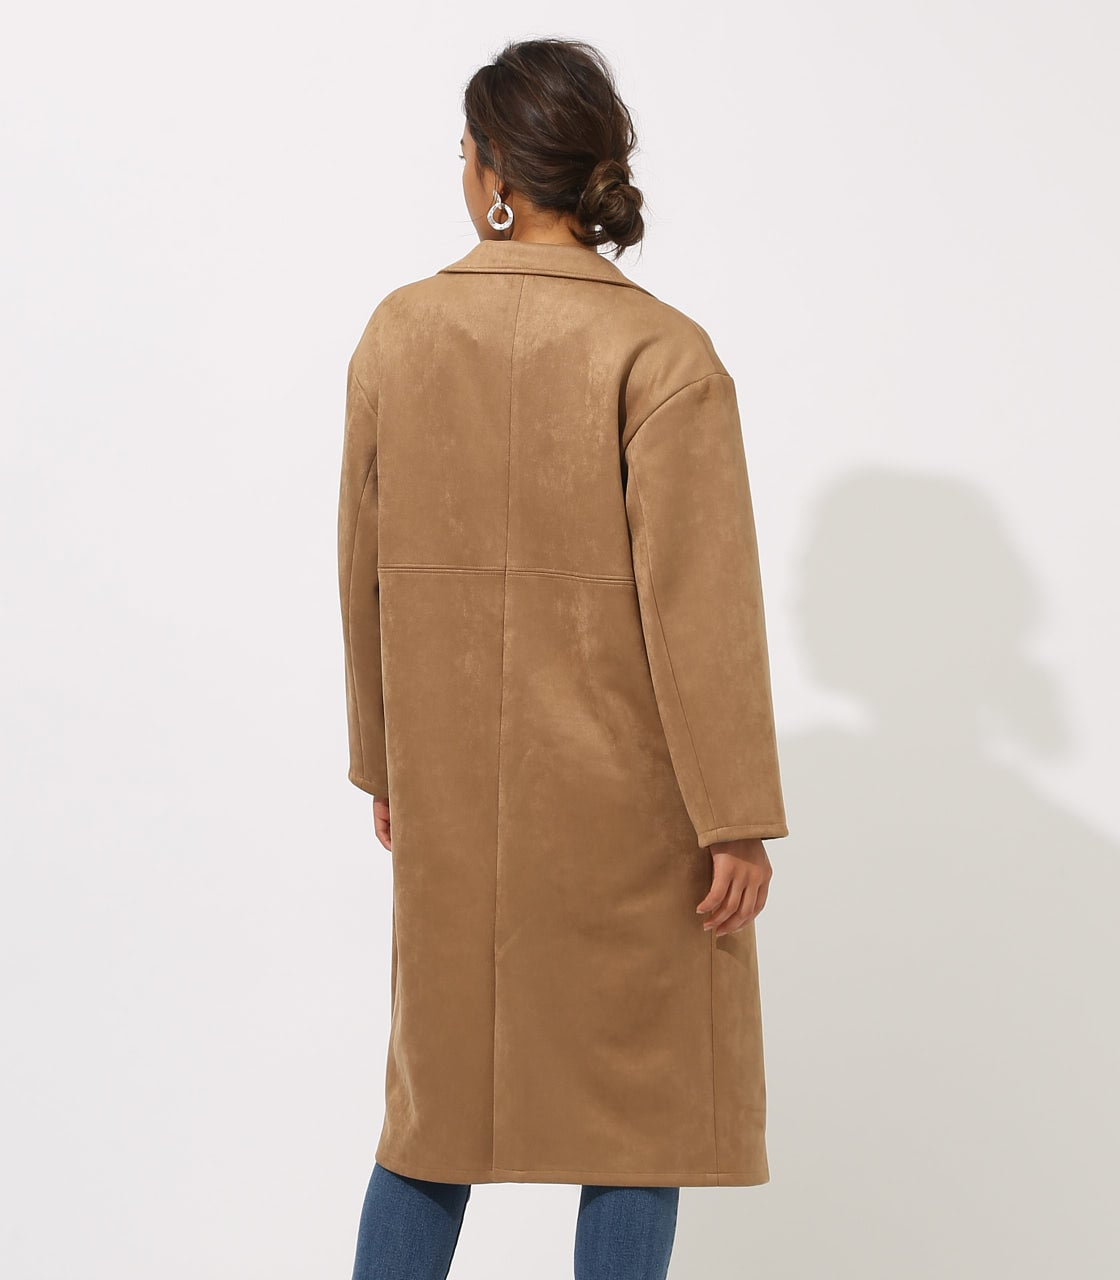 【AZUL BY MOUSSY】FAKE SUEDE CHESTER COAT 詳細画像 CAM 7